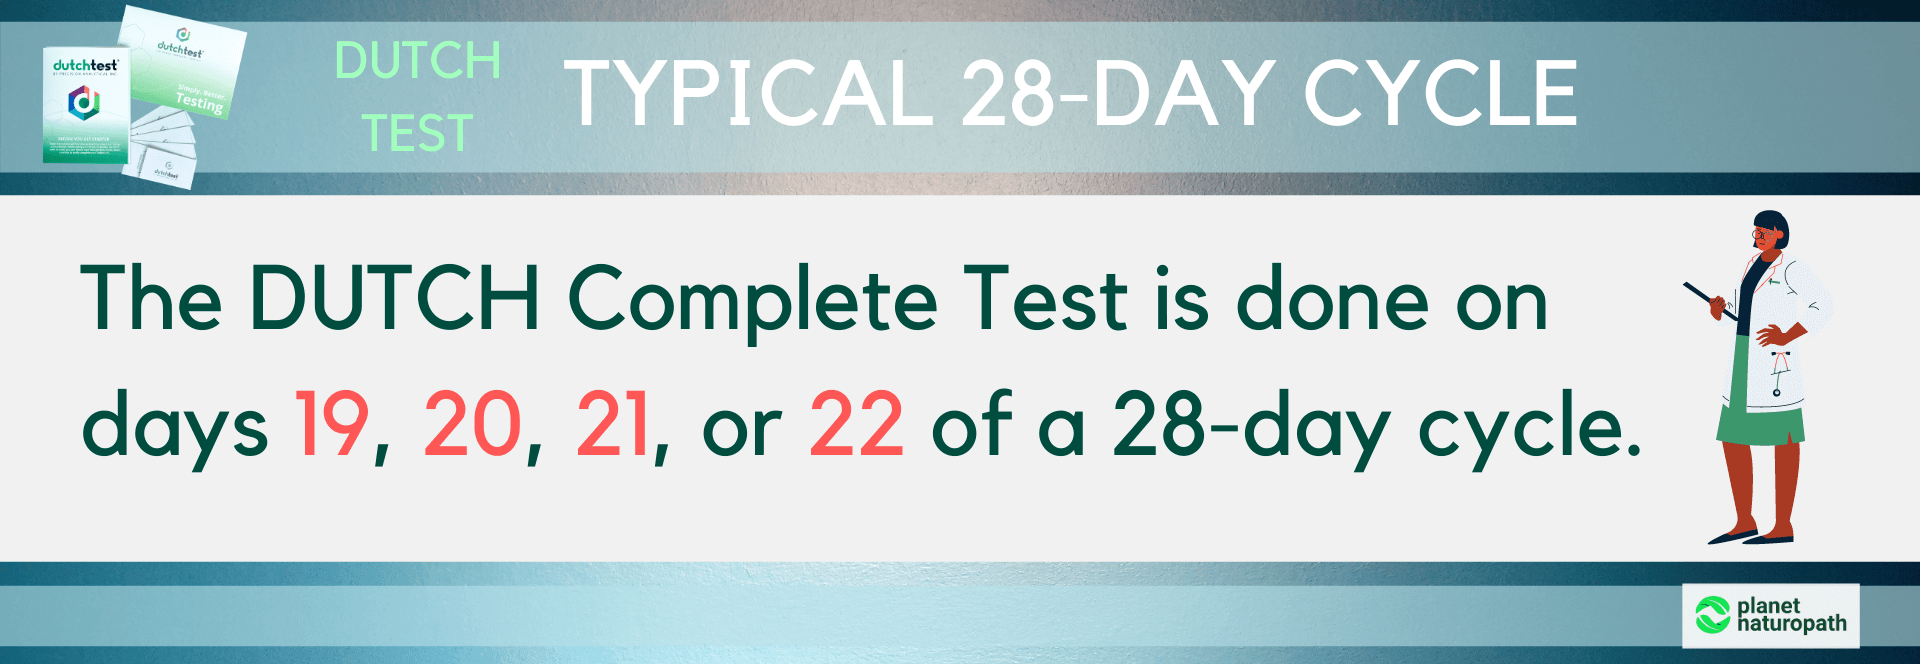 DUTCH-Test-and-Typical-28-day-cycle